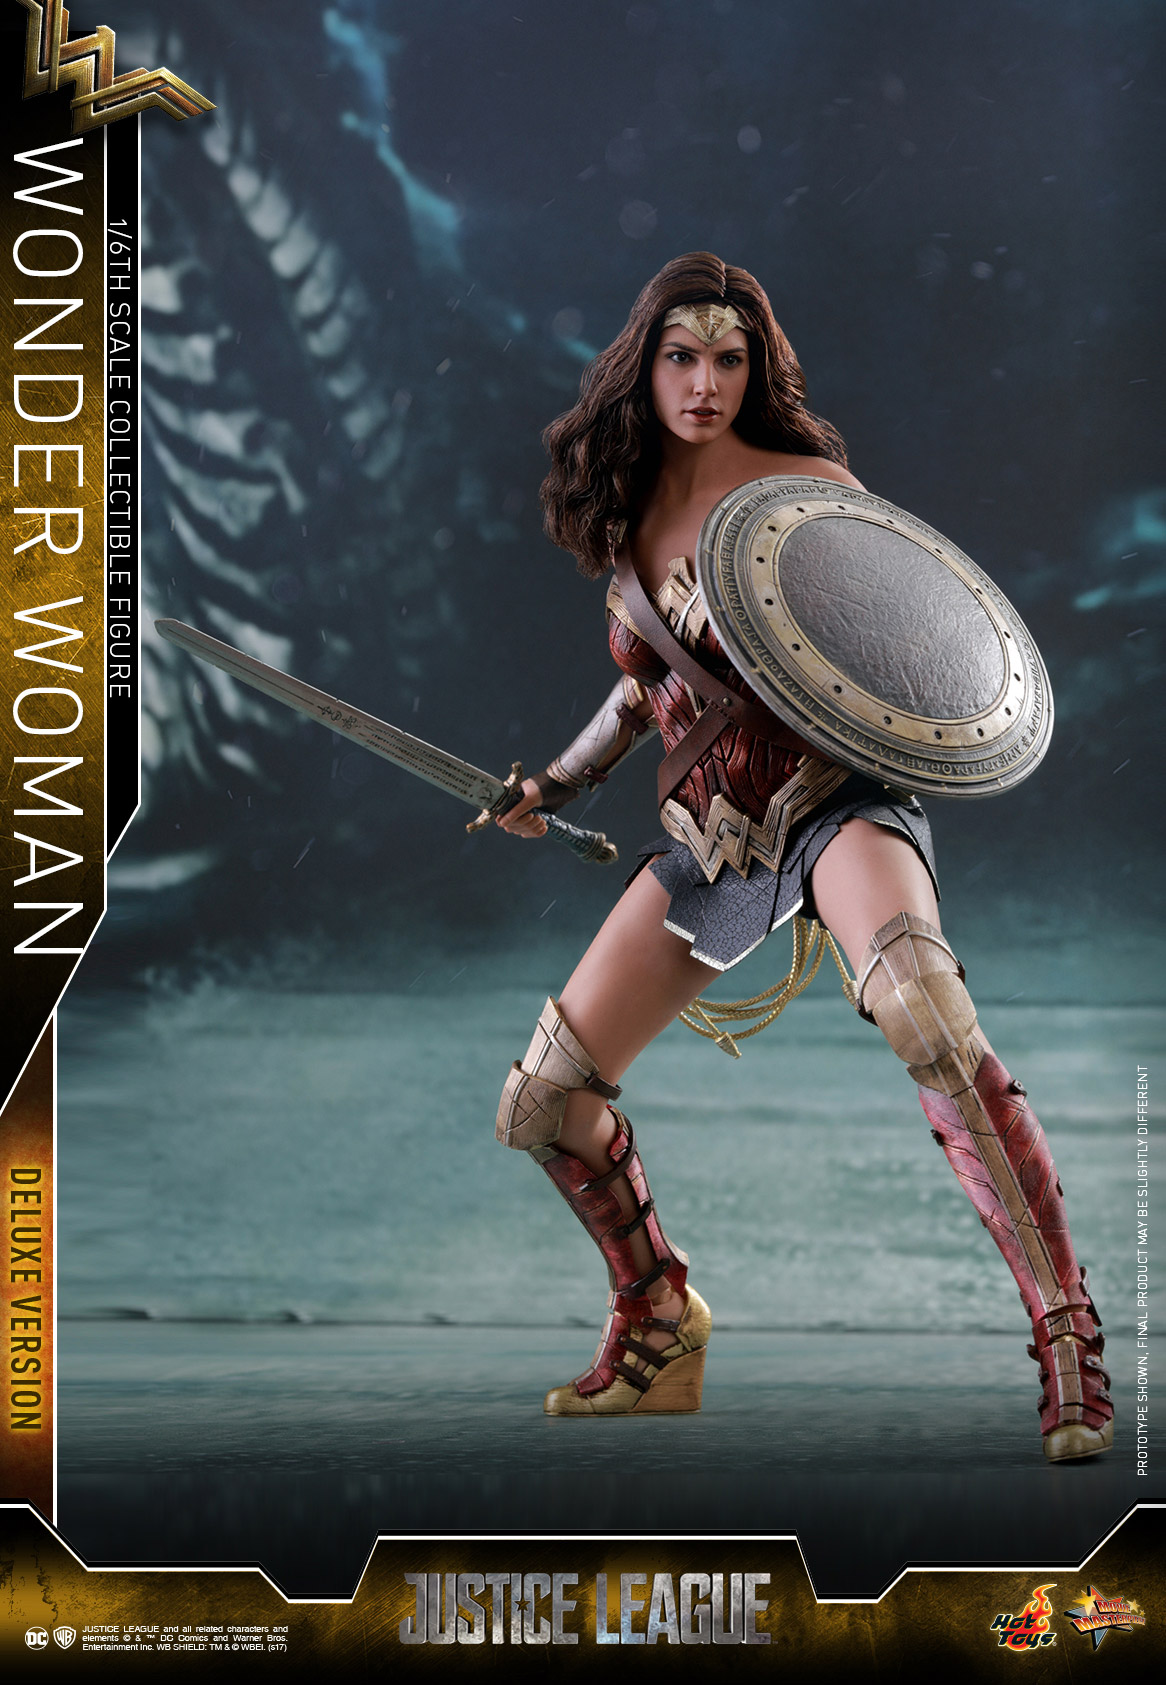 Hot-Toys-Justice-League-Wonder-Woman-collectible-figure-Deluxe_PR-2.jpg